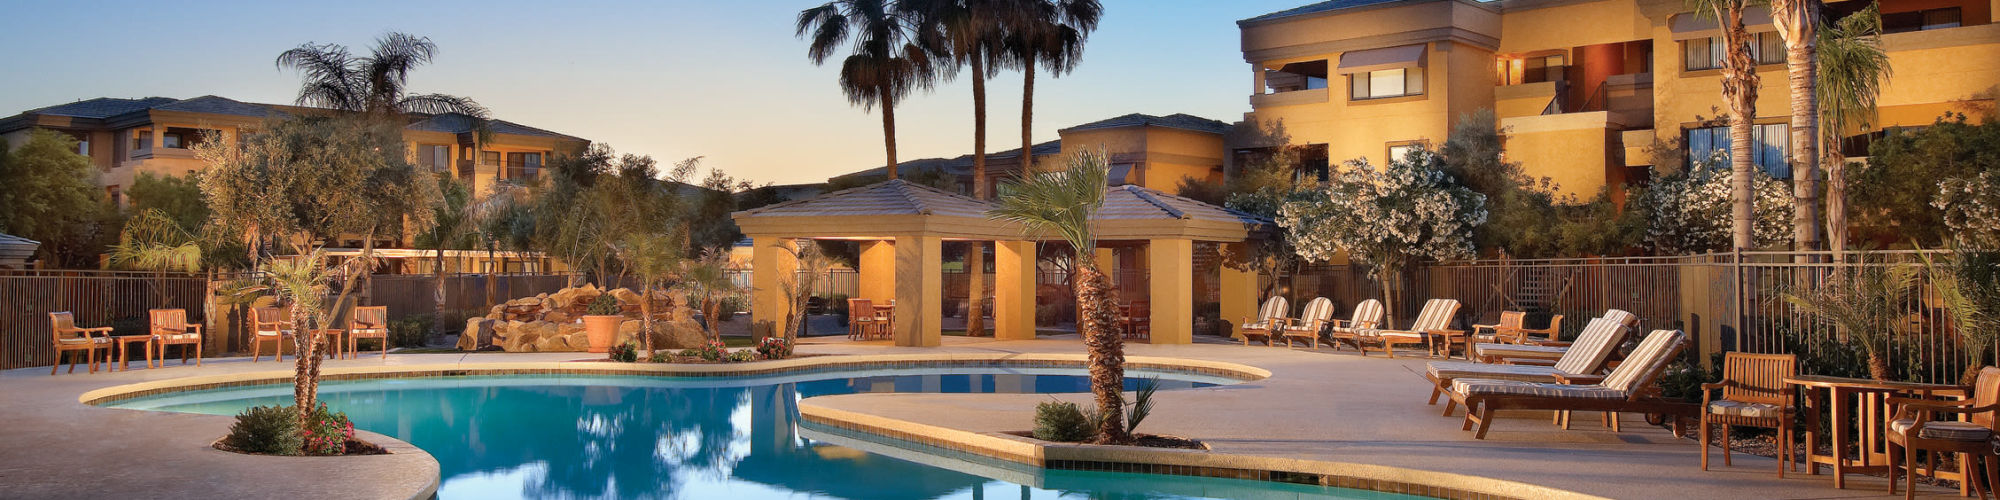 Schedule a tour of Waterside at Ocotillo in Chandler, Arizona